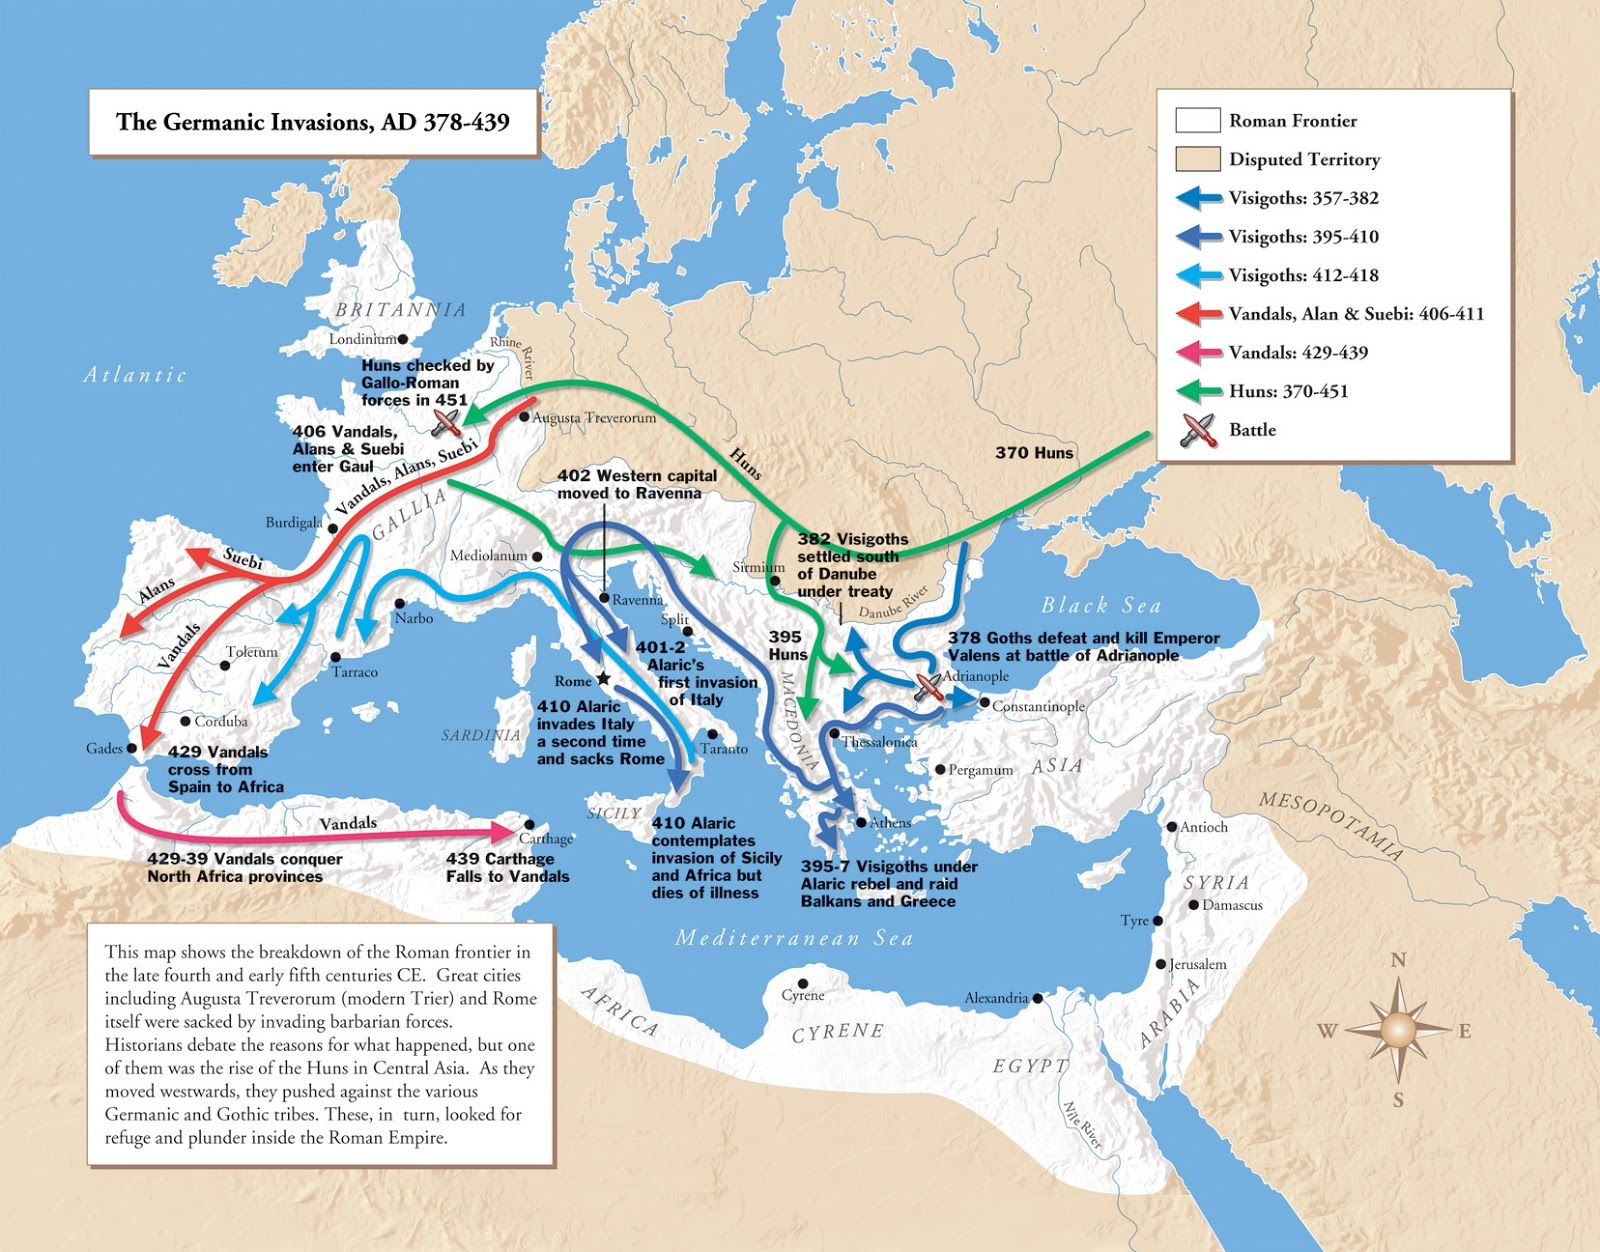 ancient greek and roman empire Affect of governments on the ancient roman empire affect of governments on the ancient greek empire pros and cons introduction to ancient governments.